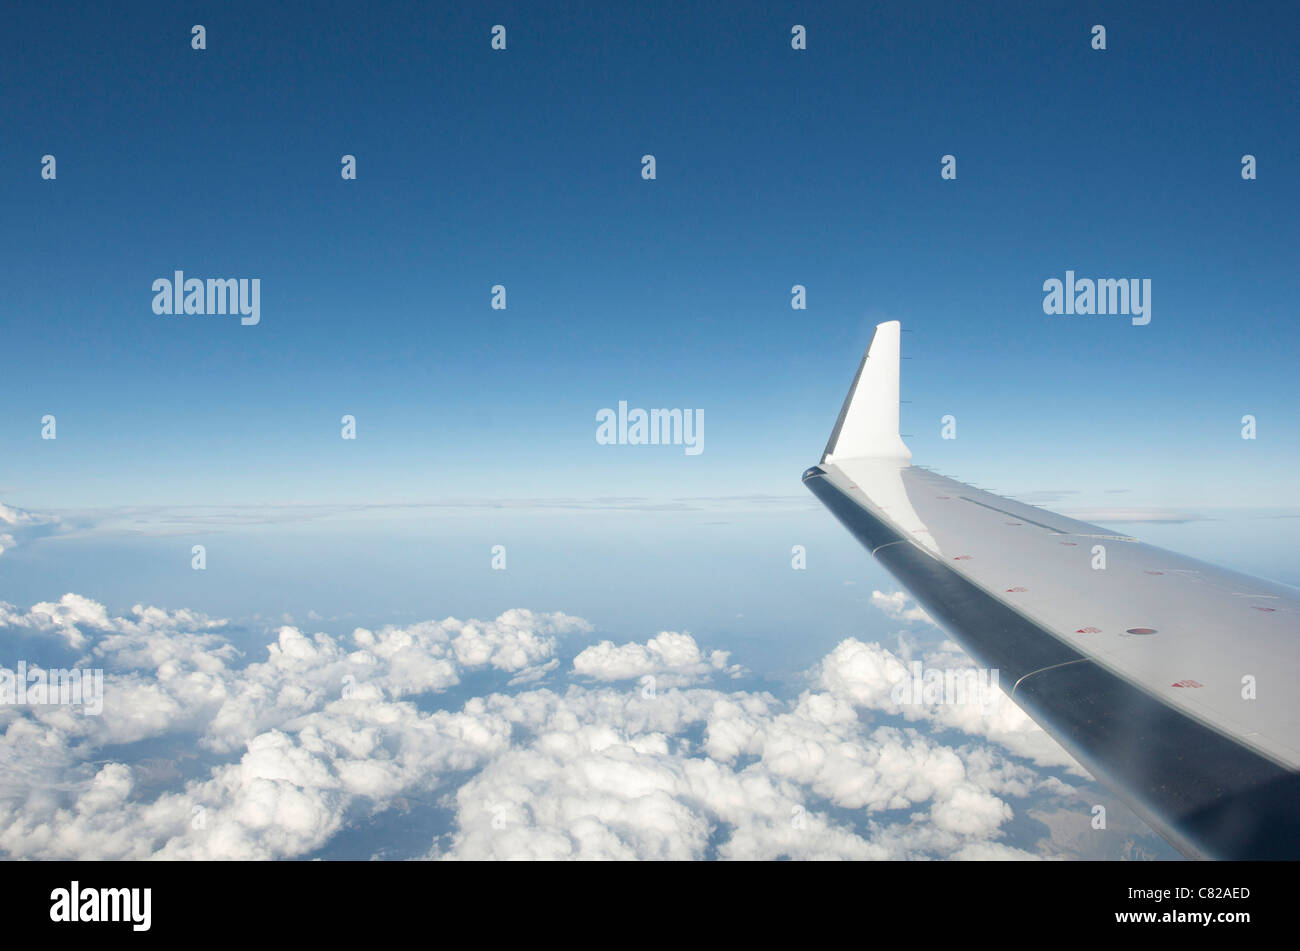 Wing tip of airplane. - Stock Image